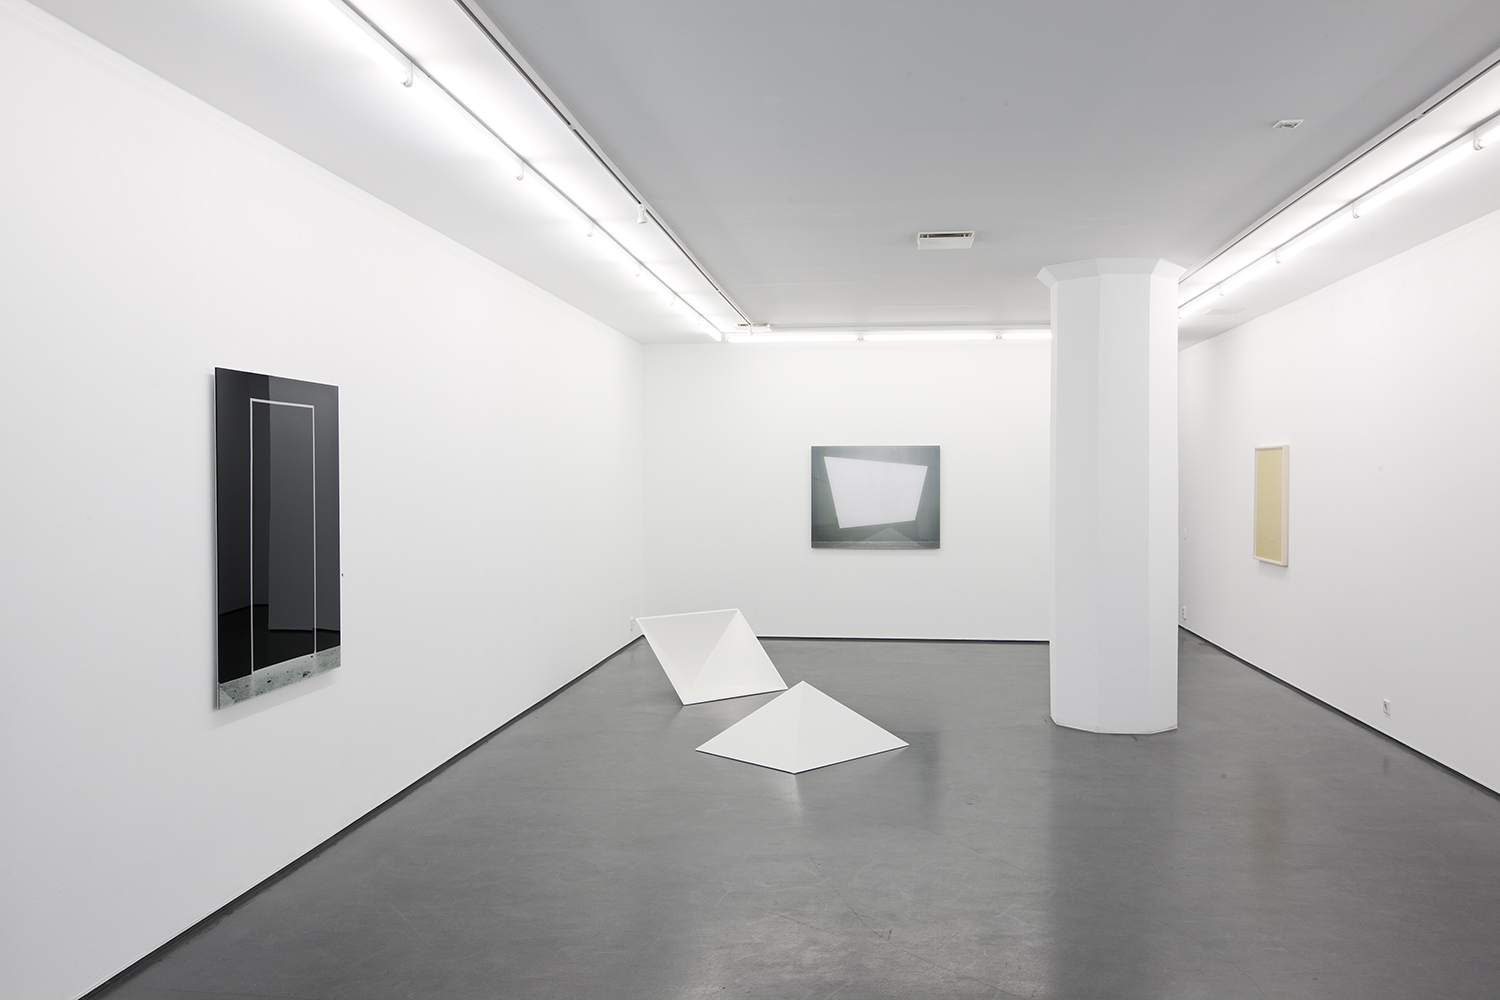 Linda Hofvander, Surfaces (to fall into, stay with and look out through), 2019, Installation view